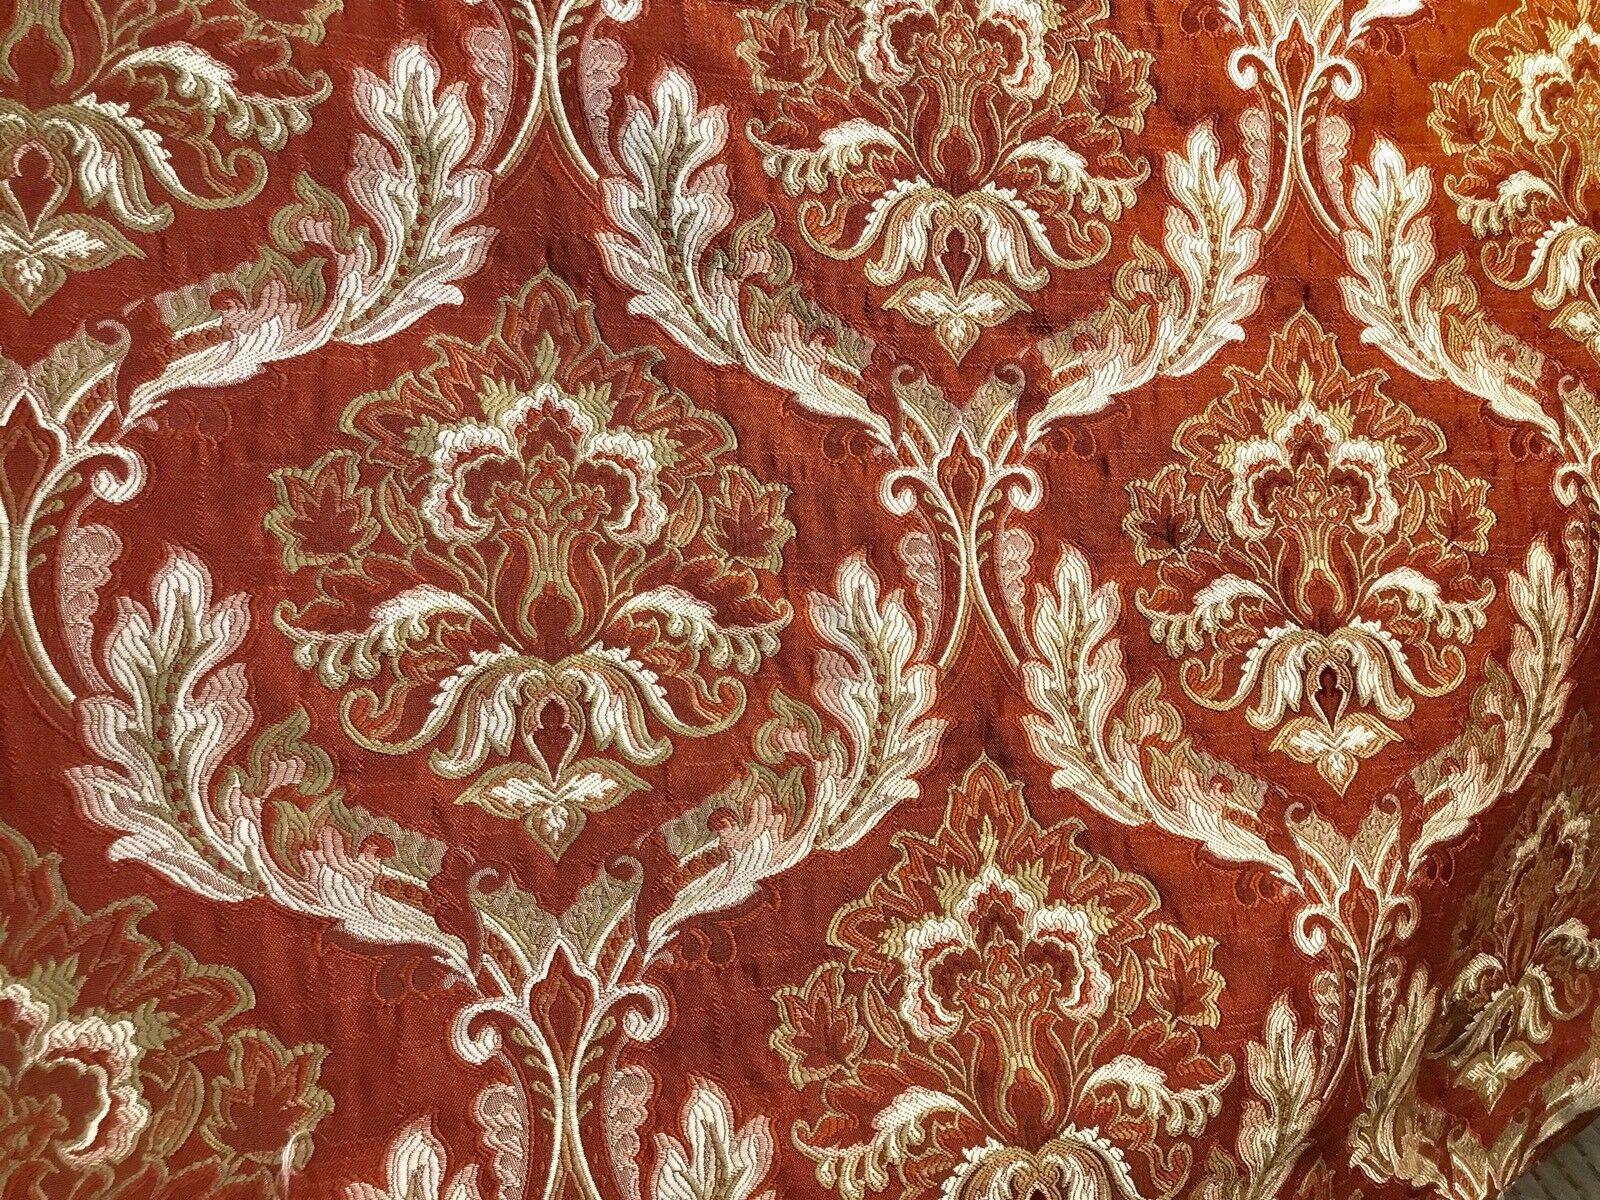 NEW! Designer Quilted Brocade Damask Upholstery Fabric- Rust Brick Red